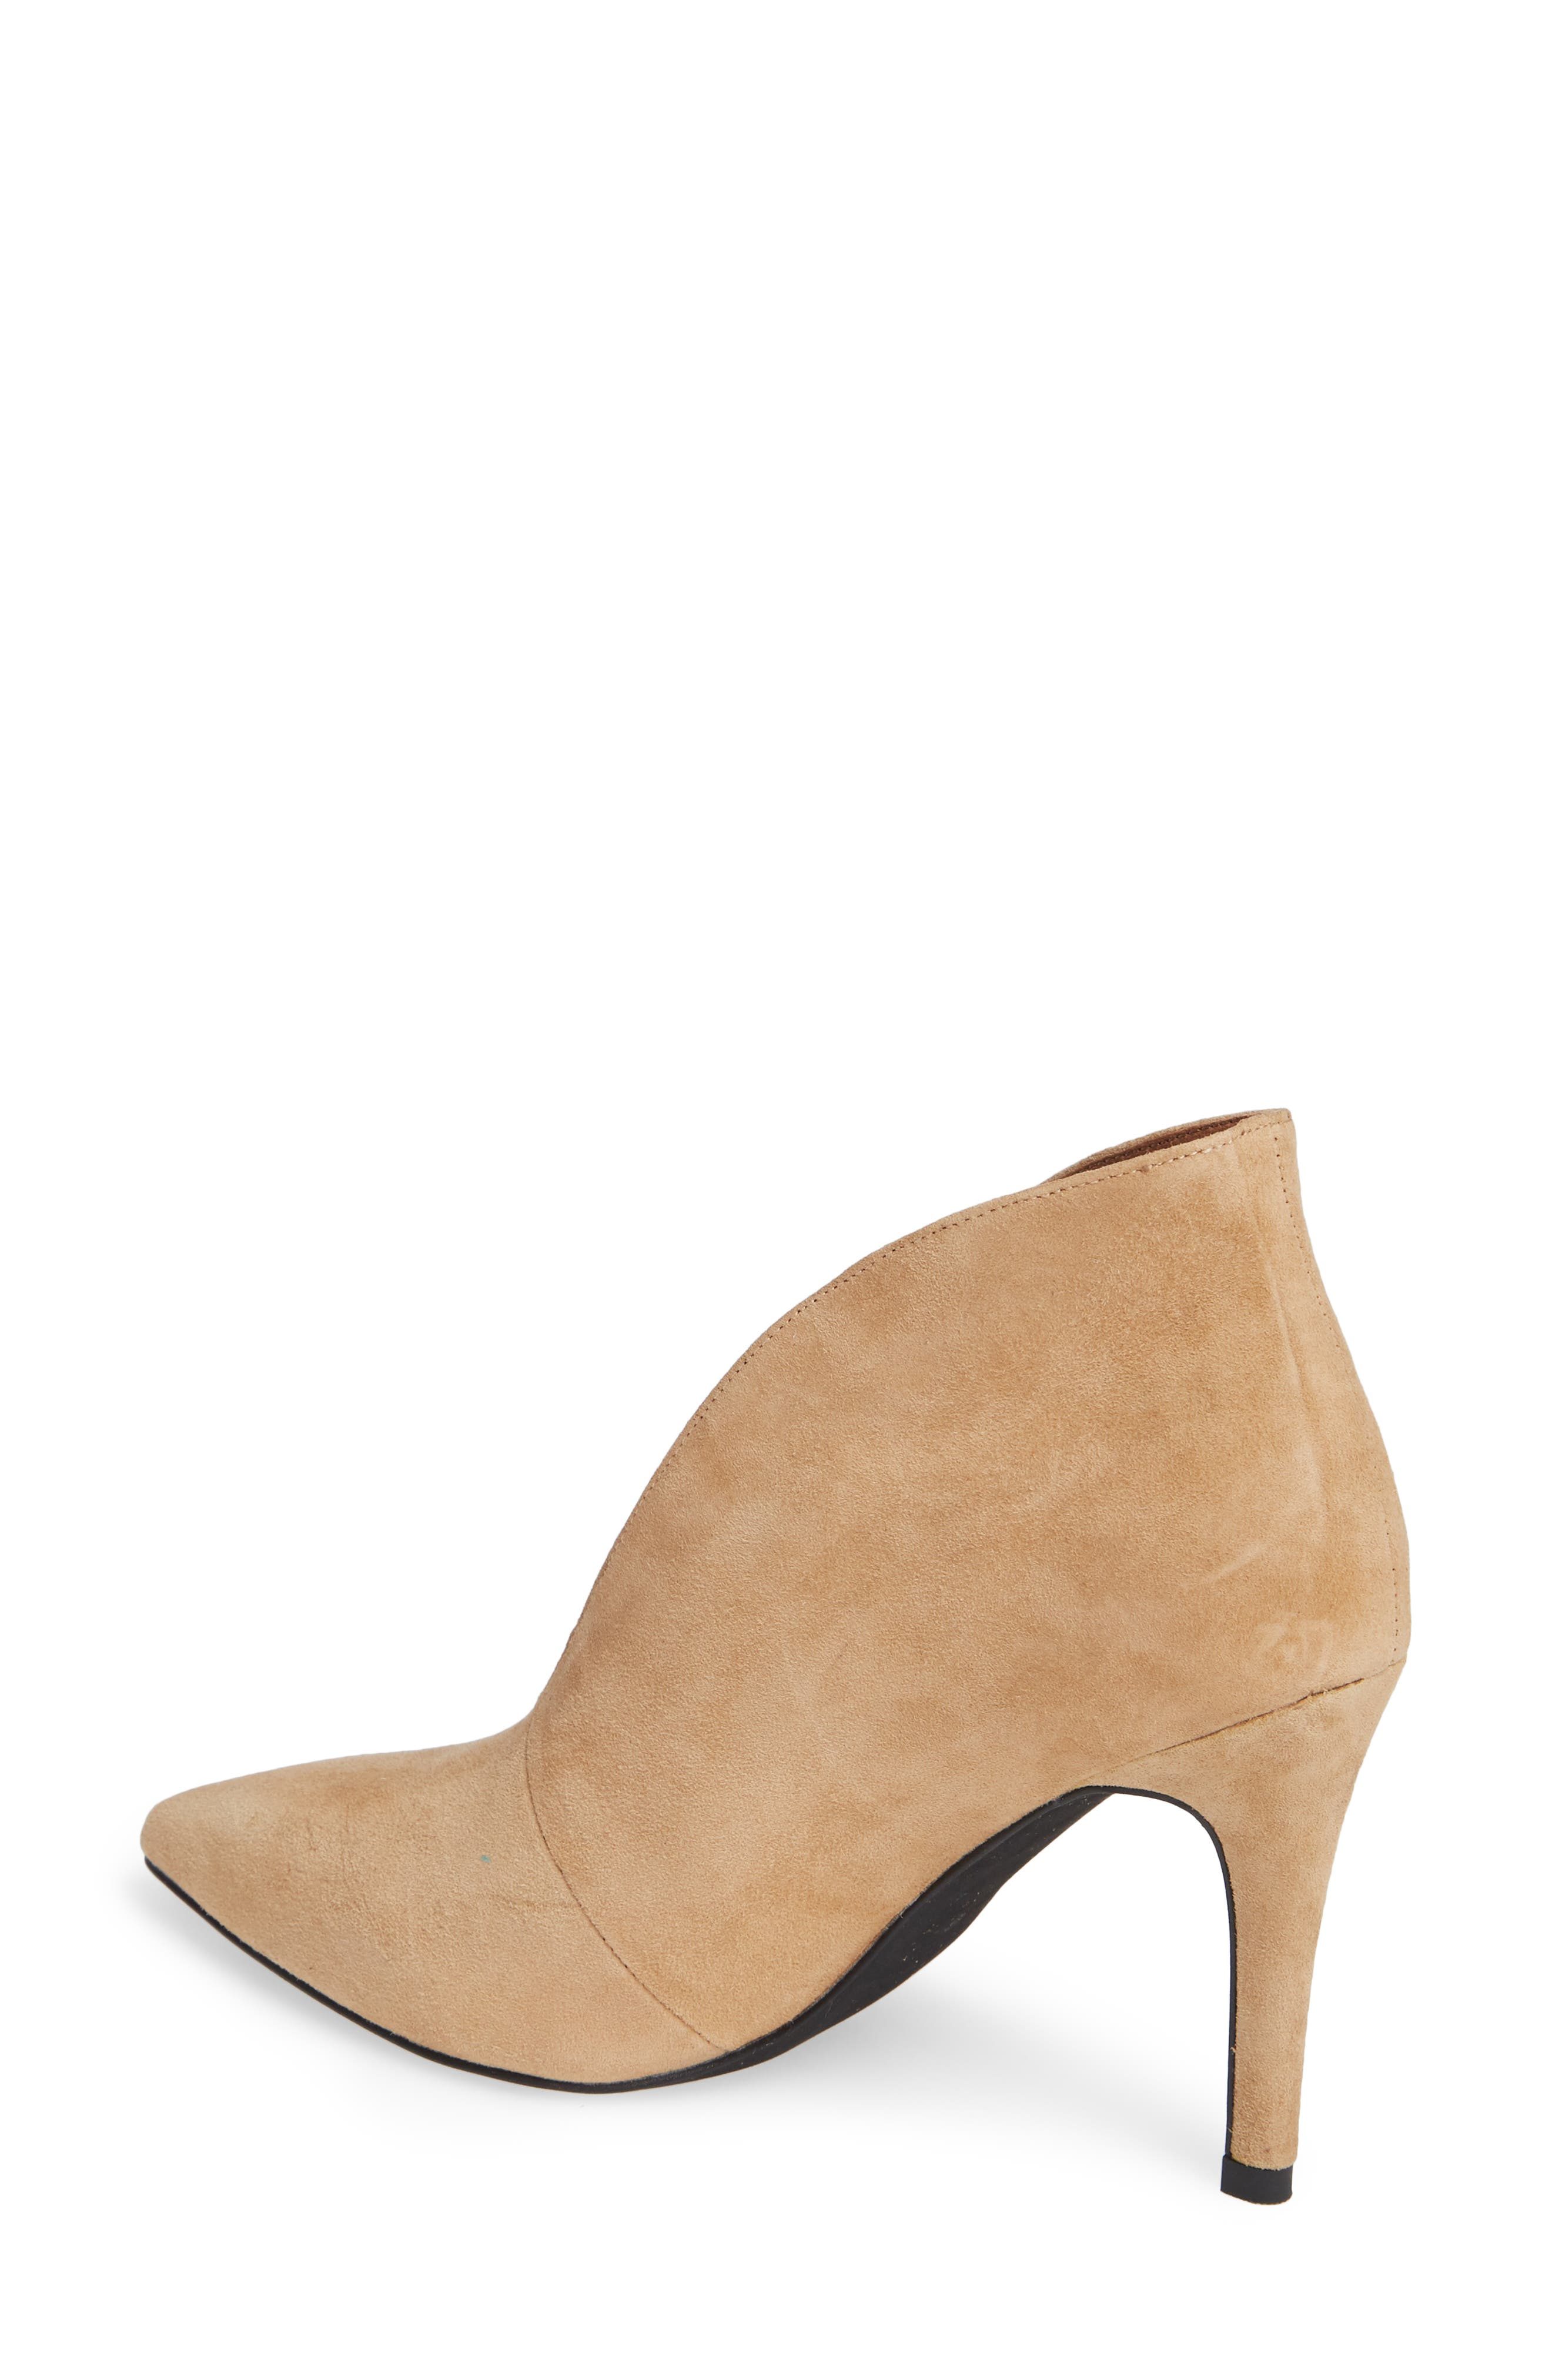 Electron Bootie,                             Alternate thumbnail 2, color,                             NUDE SUEDE